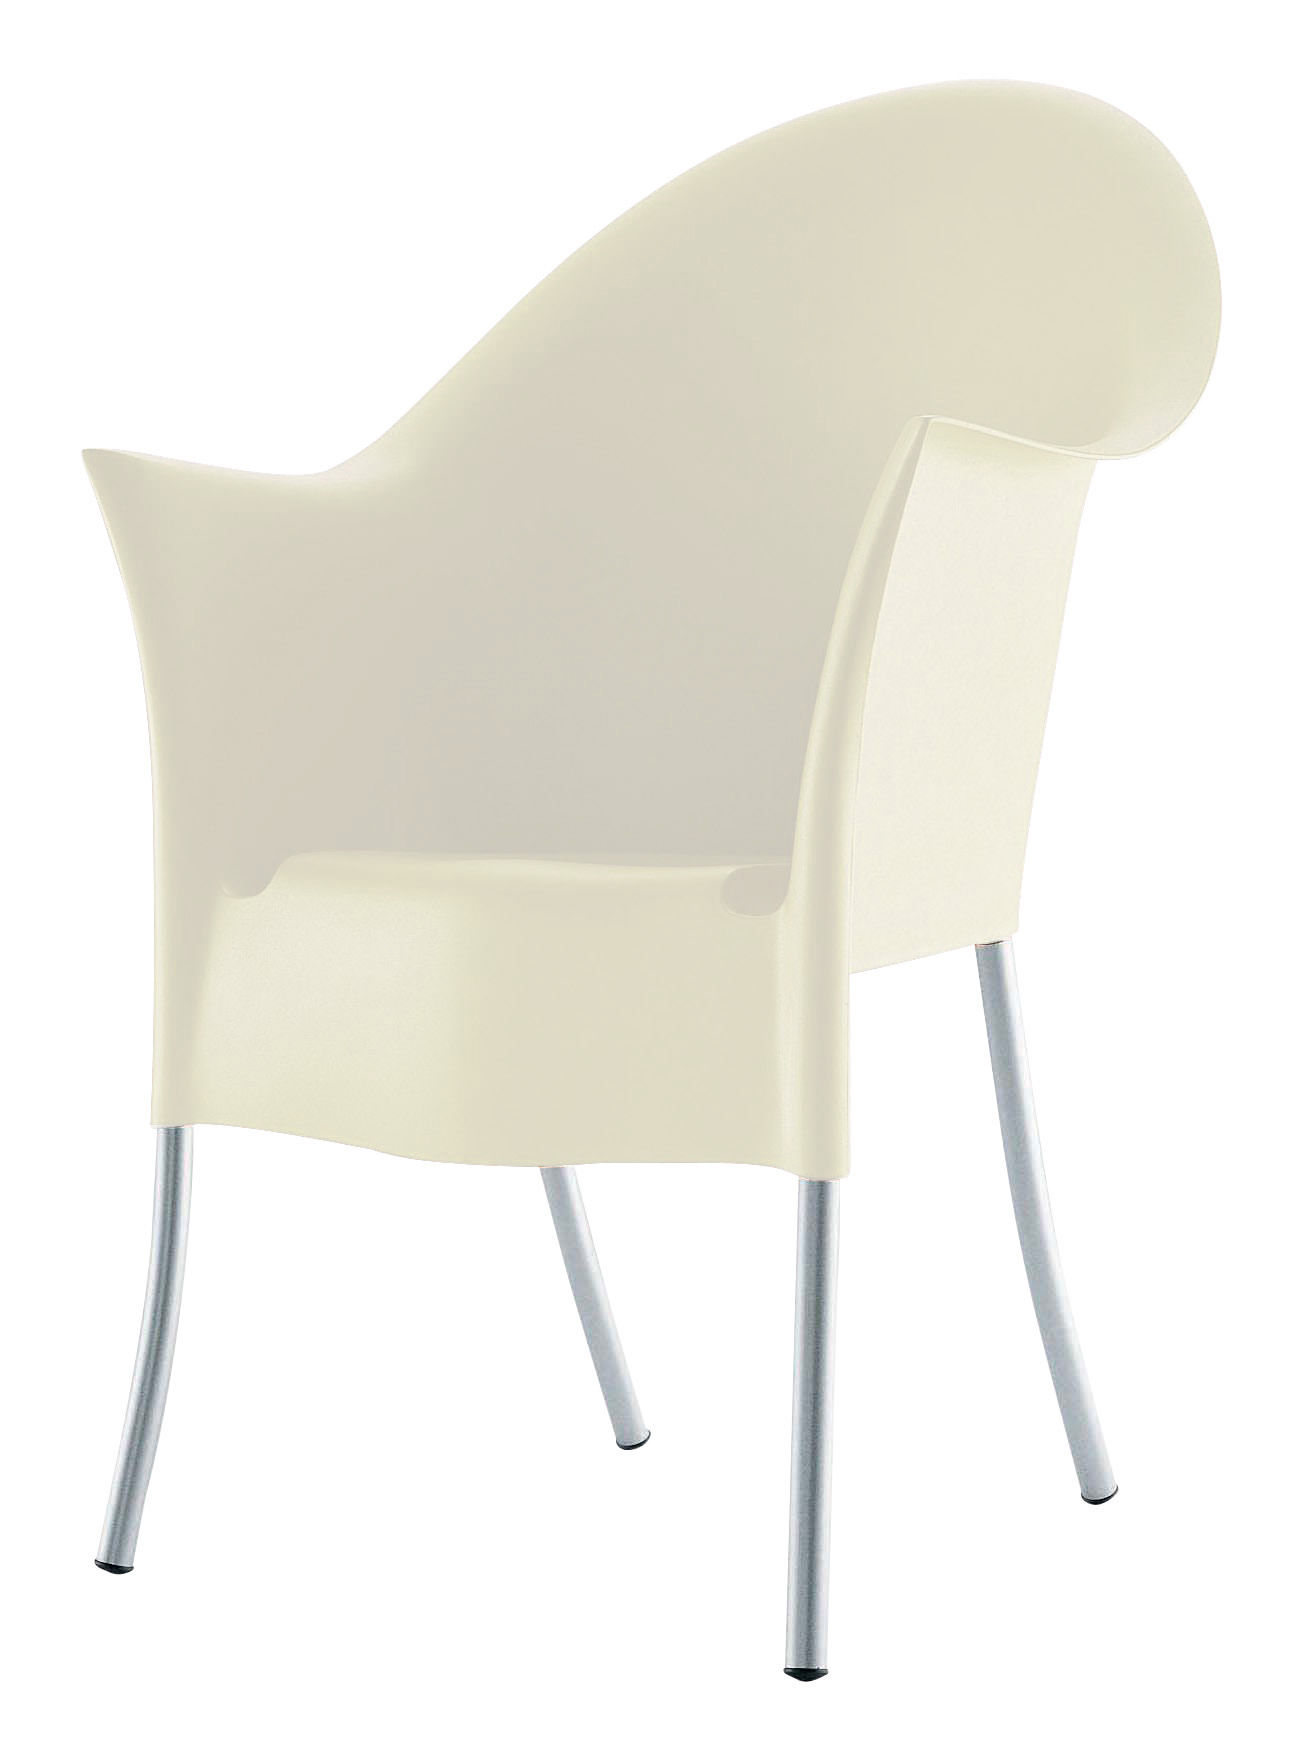 Couvre Chaise Malin Fauteuil Empilable Lord Yo Plastique Pieds Métal Driade